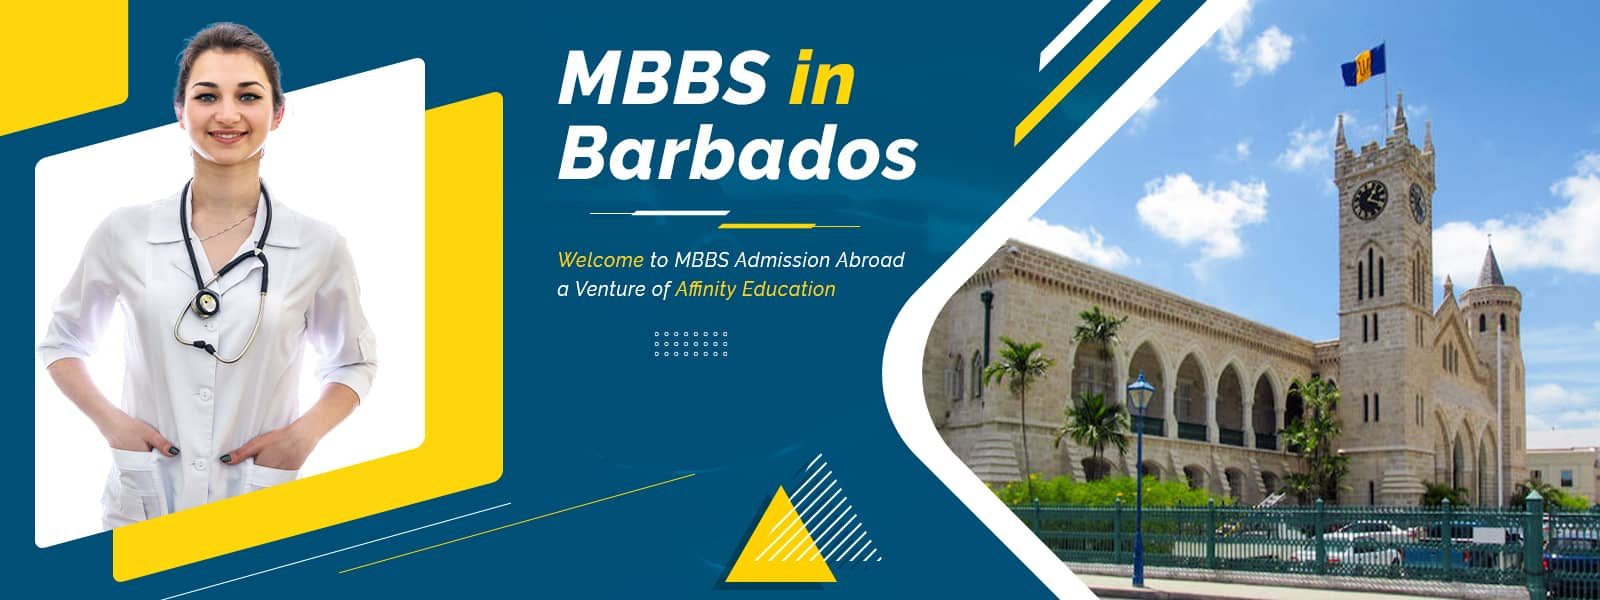 Study MBBS in Barbados Fees Structure 2021 for Indian Students